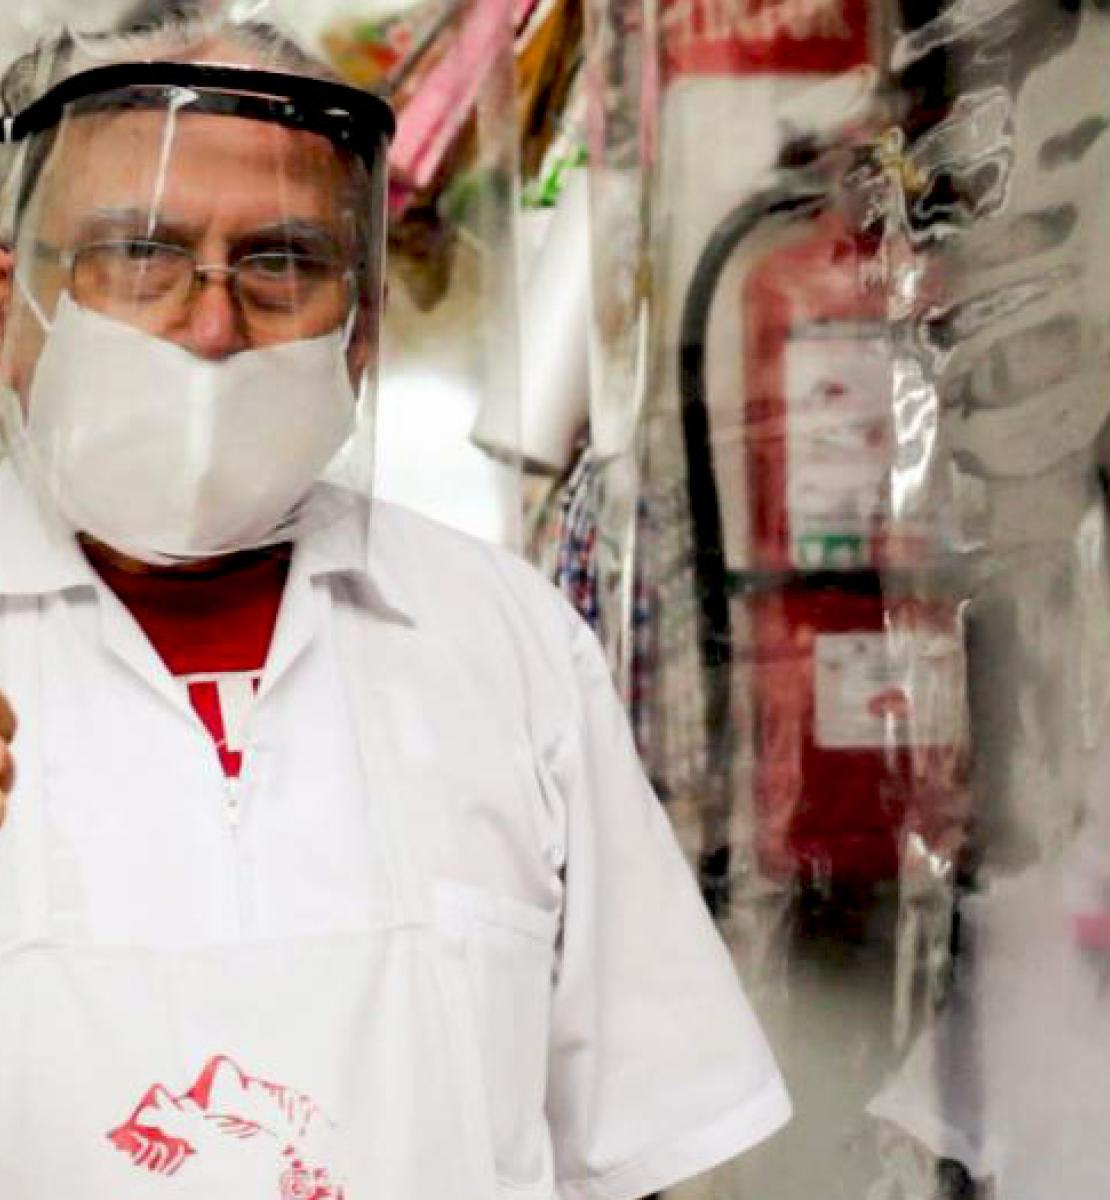 A vendor wearing a protective mask and life shield gives us a thumbs up as he stands near his plastic covered shelves of products.